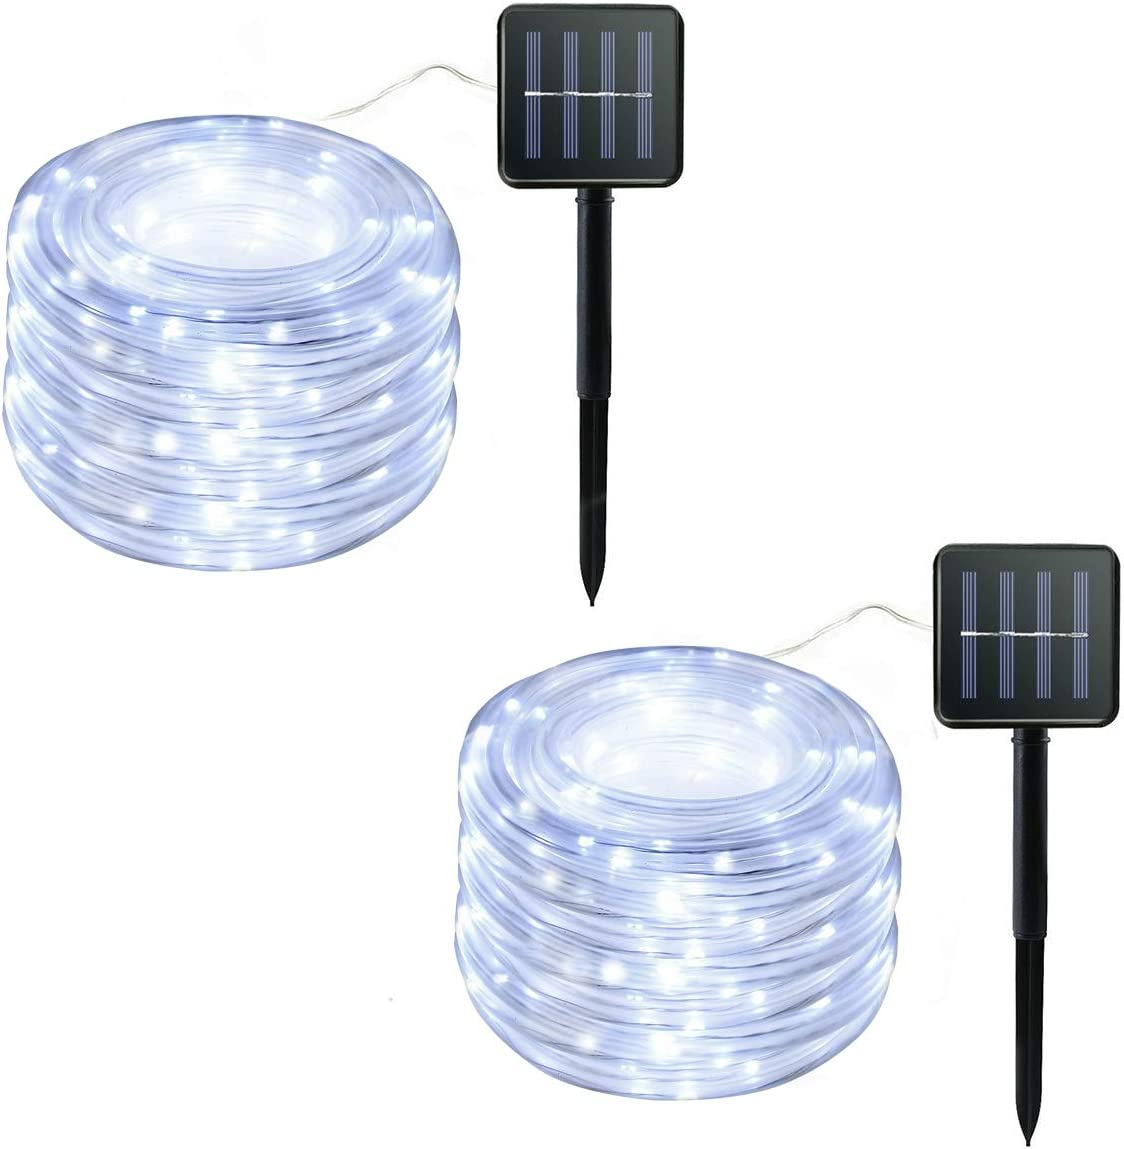 MINGZHE Solar Rope String Lights,50LED Waterproof Copper Wire Lights Tube 23ft, Outdoor Rope Lights for Christmas Garden Yard Path Fence Tree Wedding Party (2Pack)